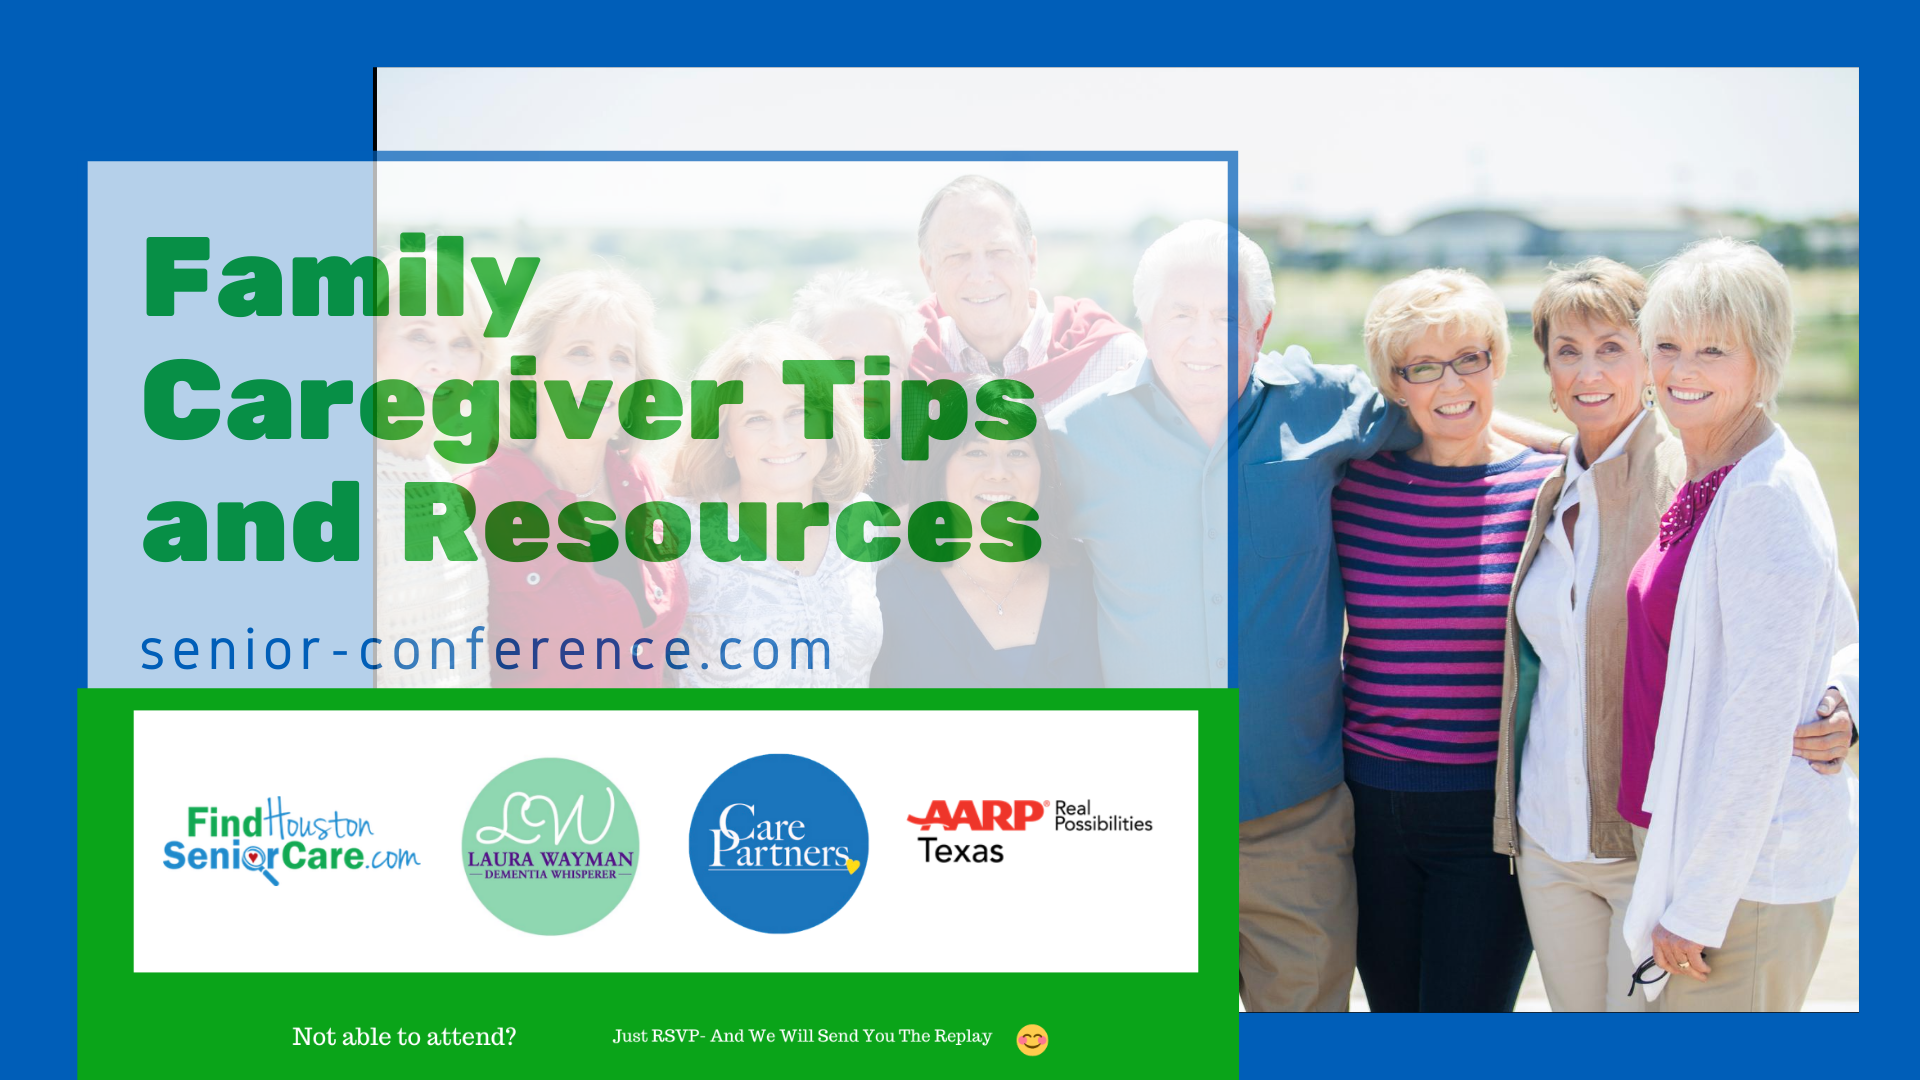 Family caregiver tips and resources conference banner